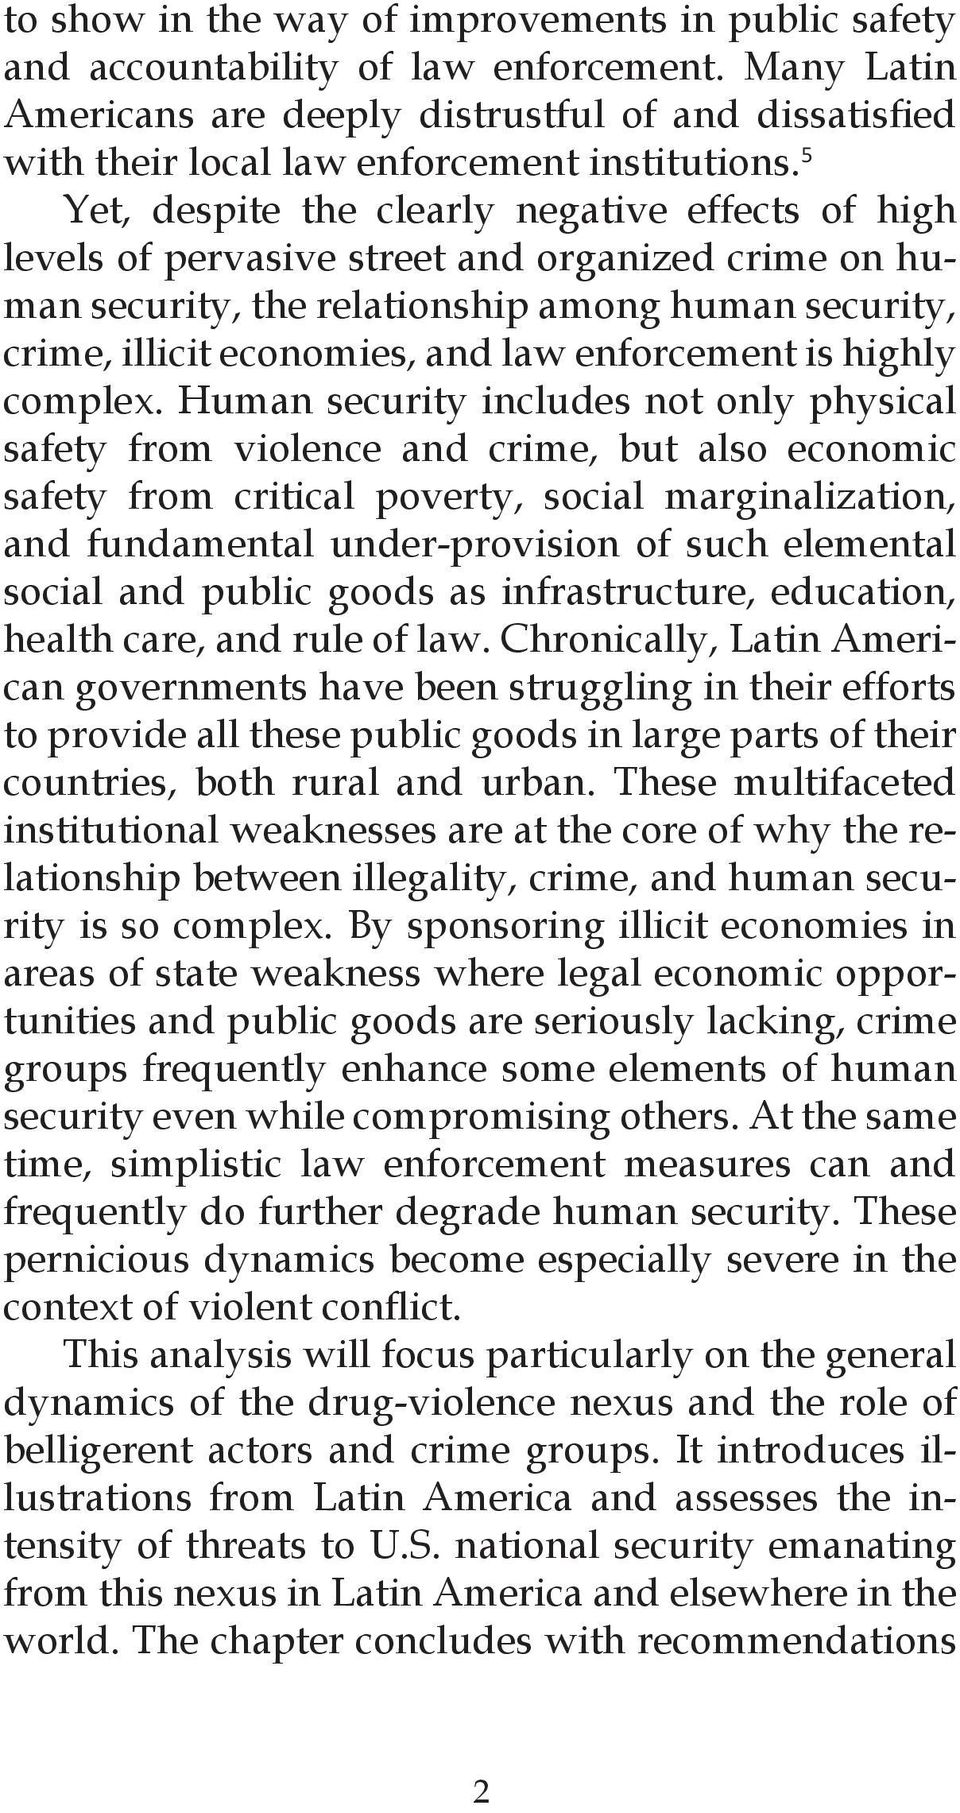 5 Yet, despite the clearly negative effects of high levels of pervasive street and organized crime on human security, the relationship among human security, crime, illicit economies, and law